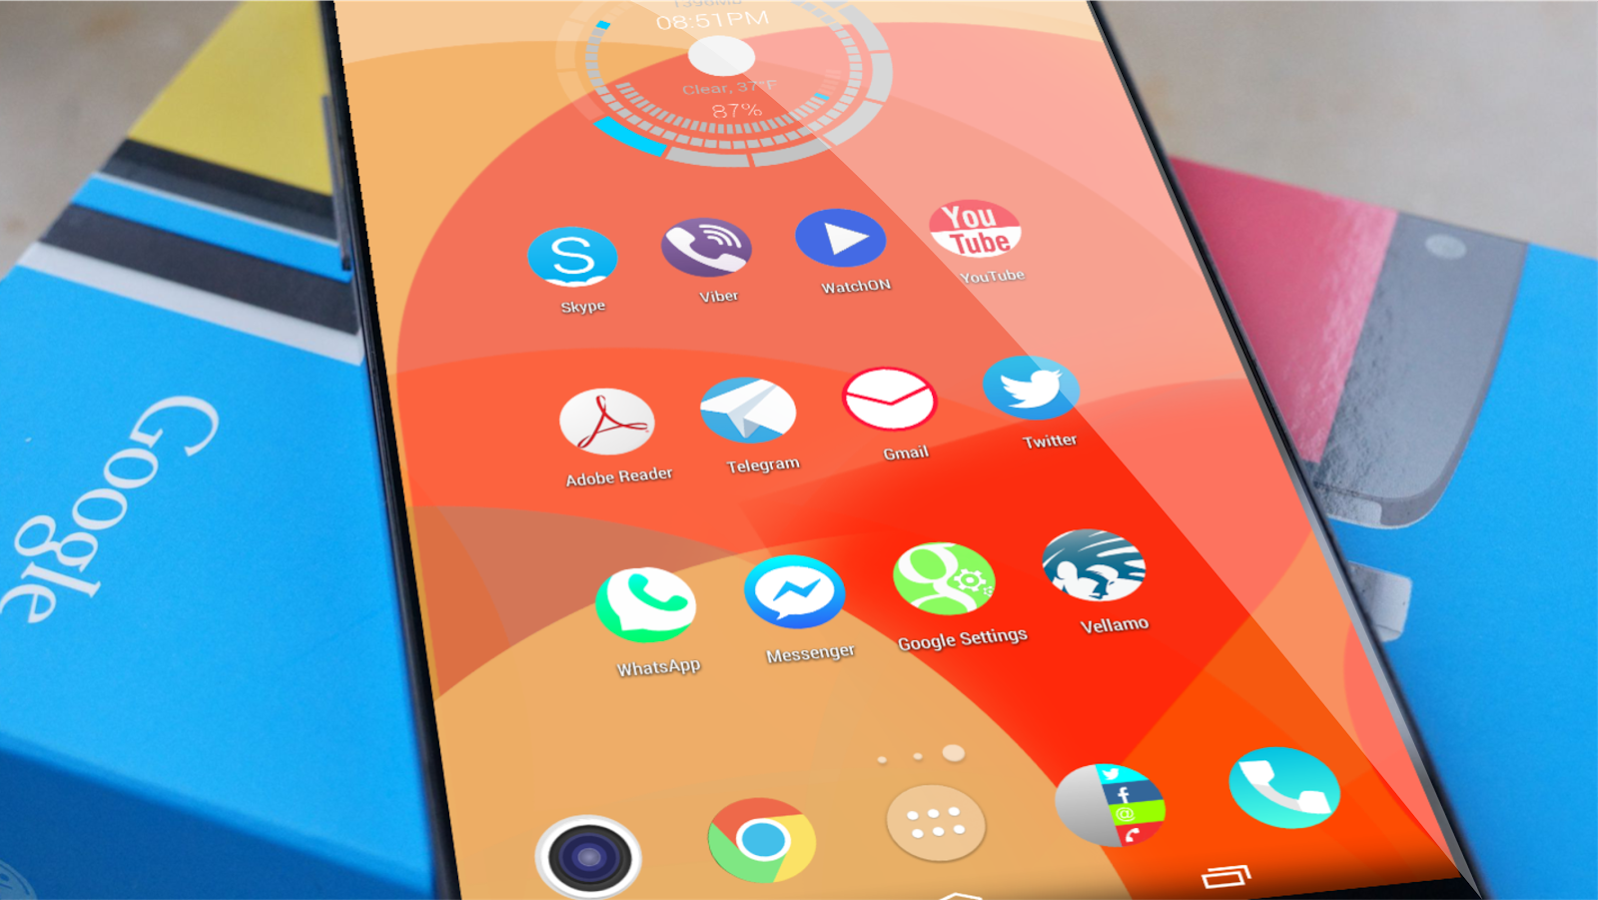 Solstice HD Theme Icon Pack v1.2 APK Please visit our